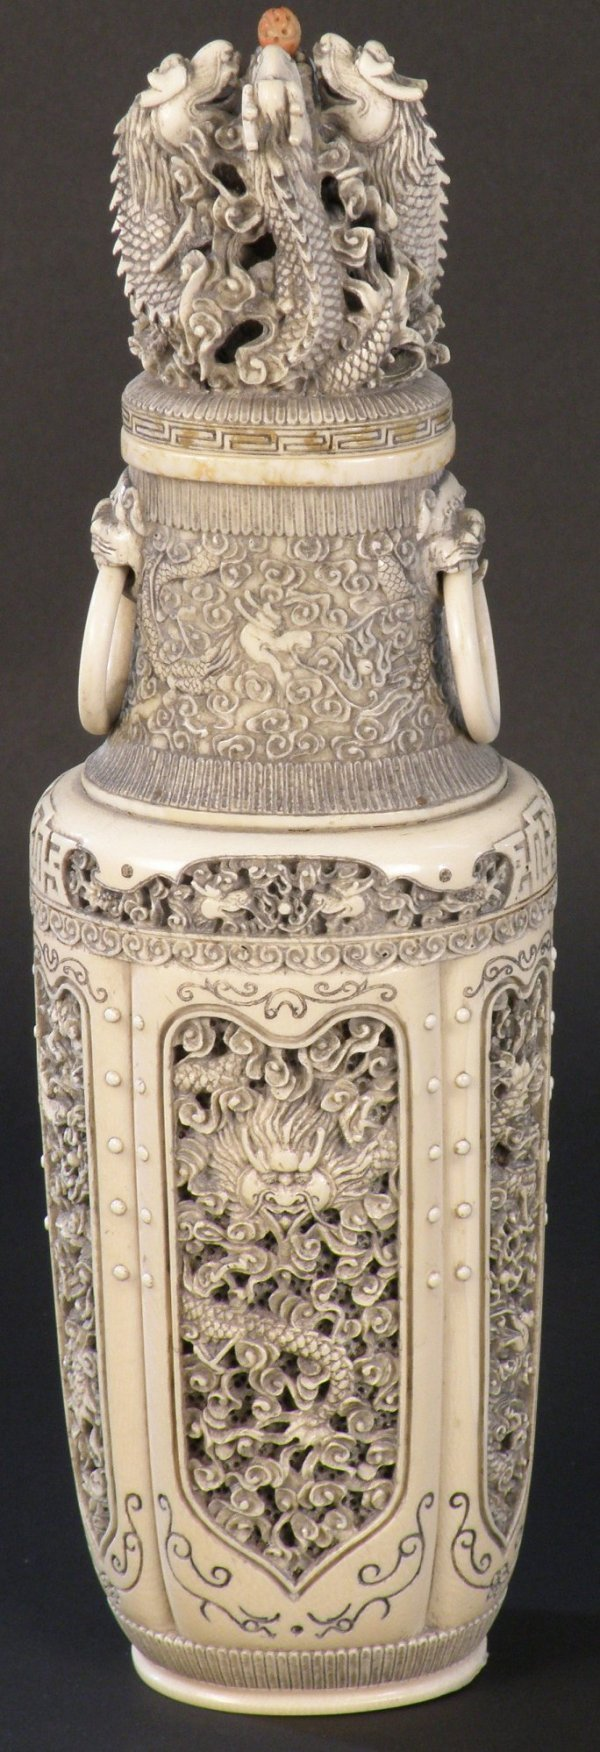 16: A Chinese ivory vase and cover